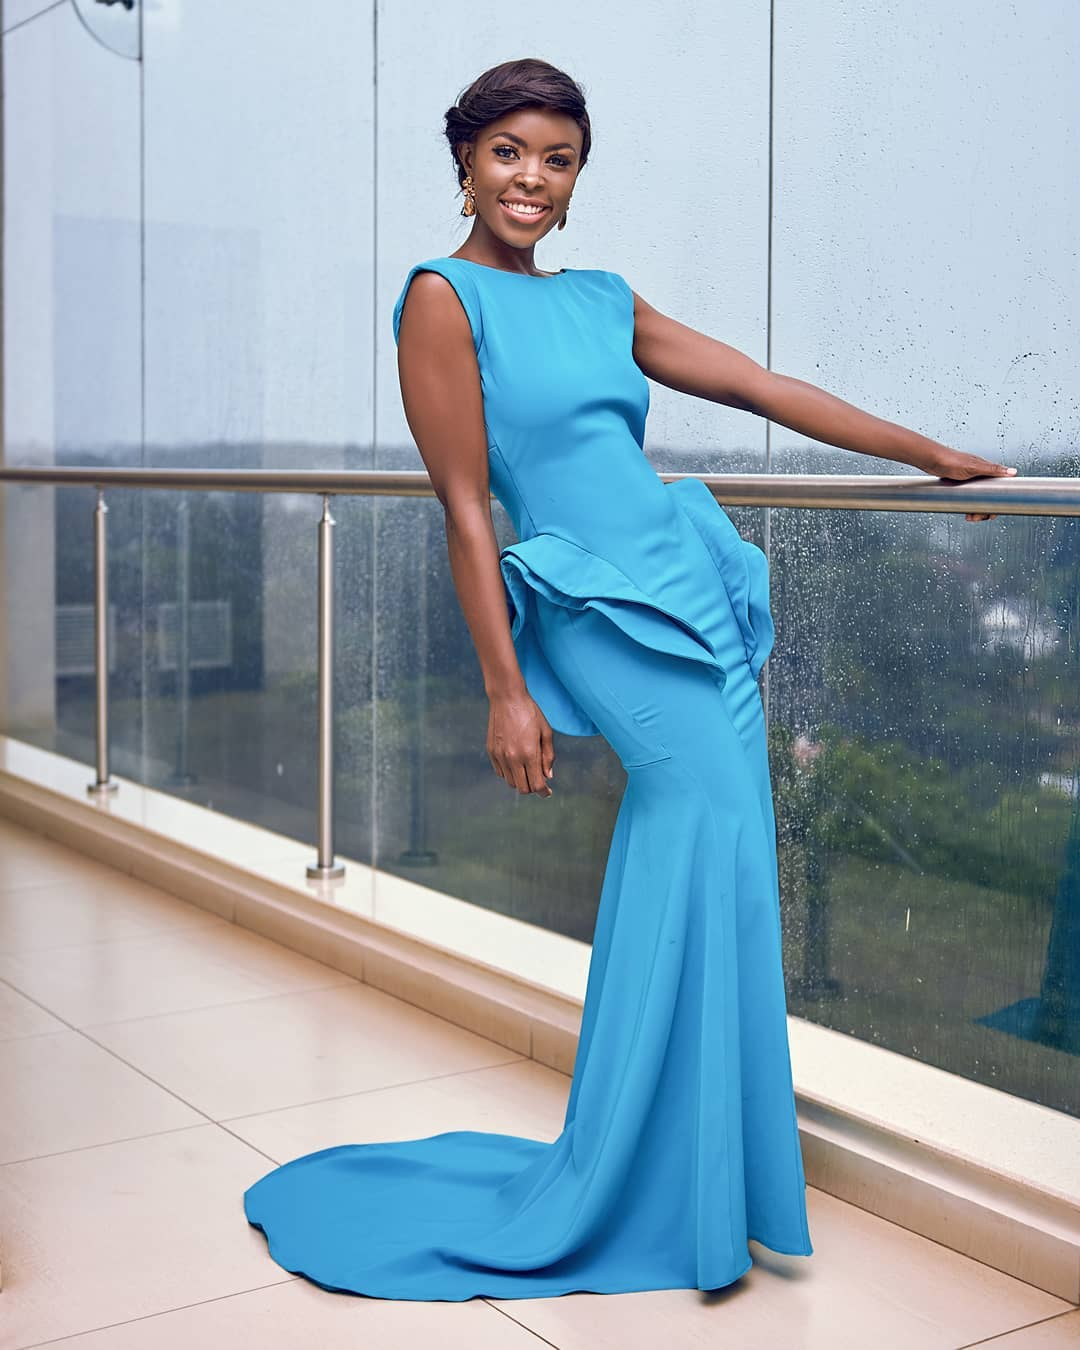 jacky vike - Top 8 Kenyan celebrities that pull that perfect Red Carpet gown look